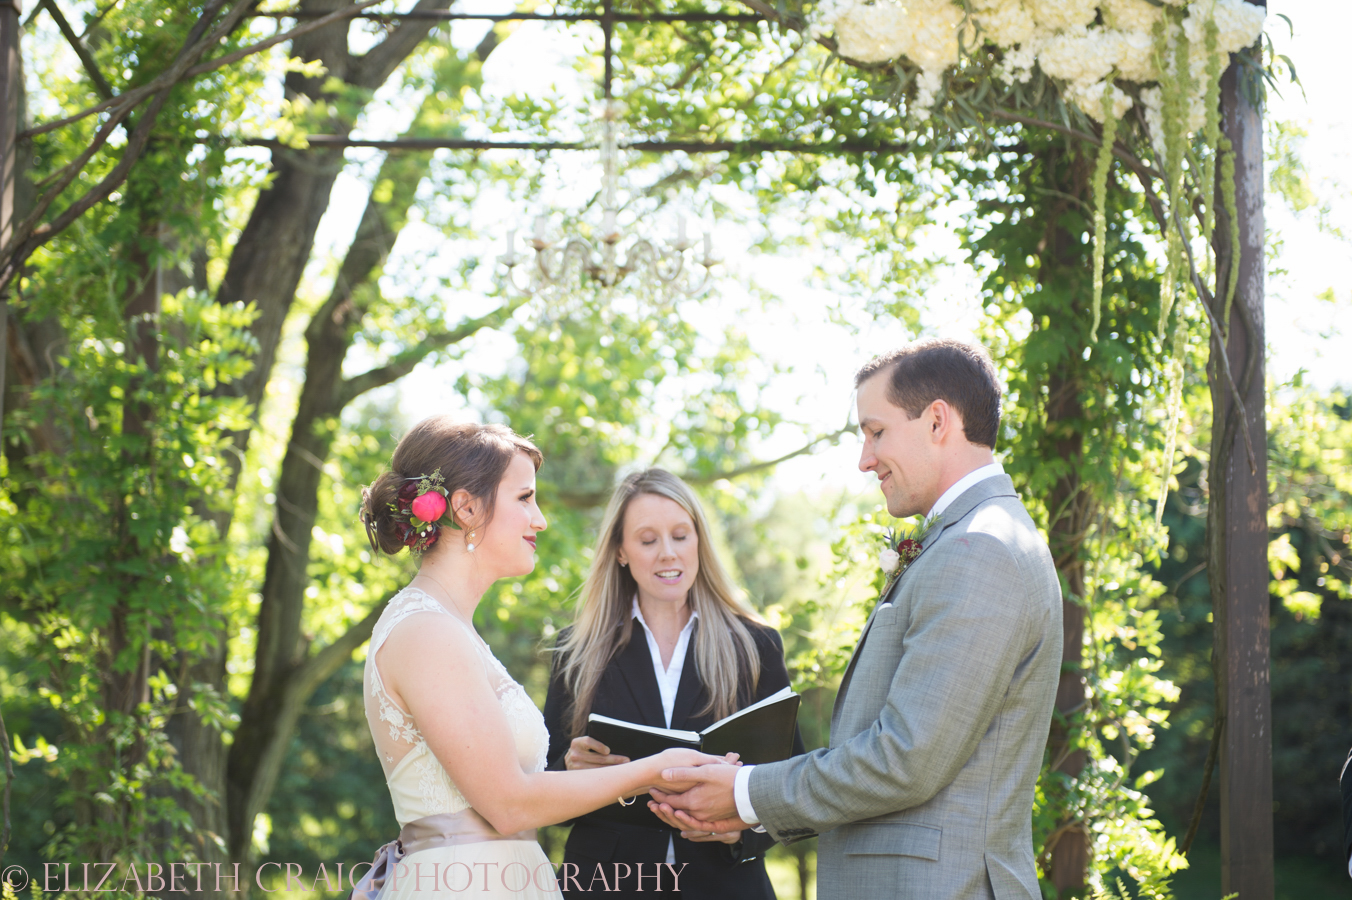 Shady Elms Farm Weddings and Receptions Elizabeth Craig Photography-0113